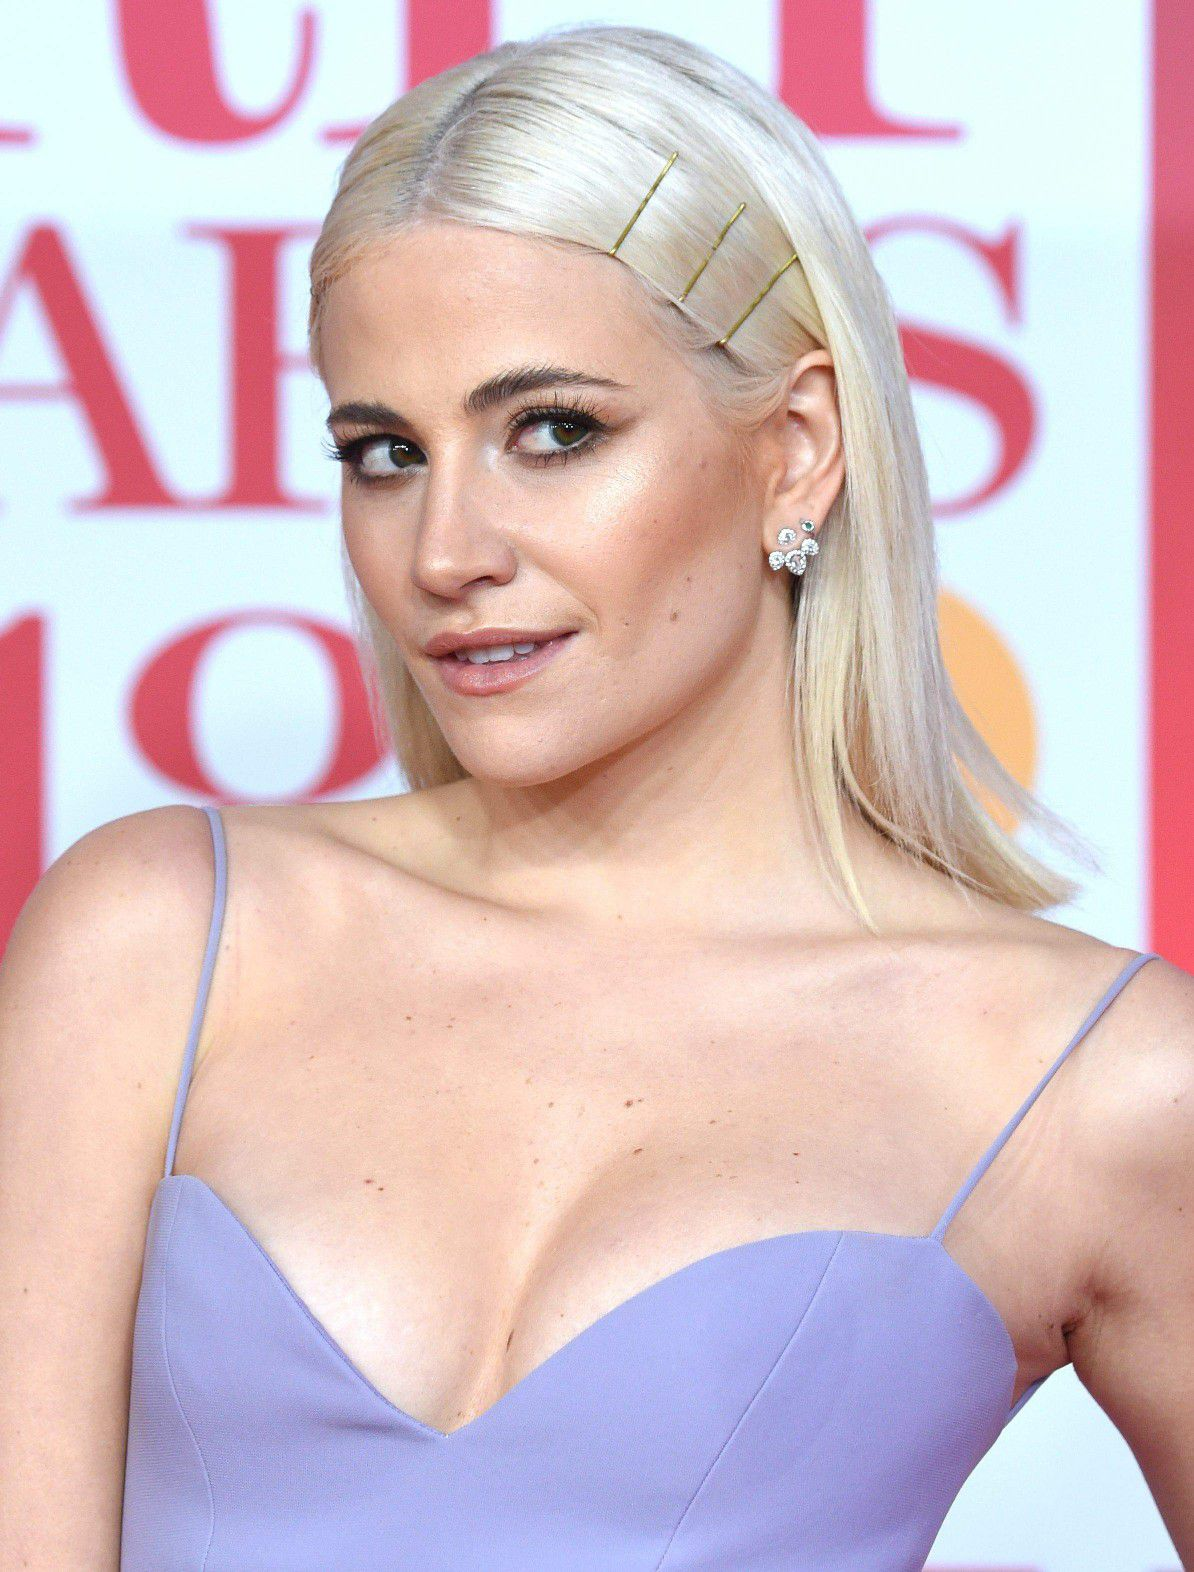 pixie-lott-panty-upskirt-at-the-38th-brit-awards-in-london-4827